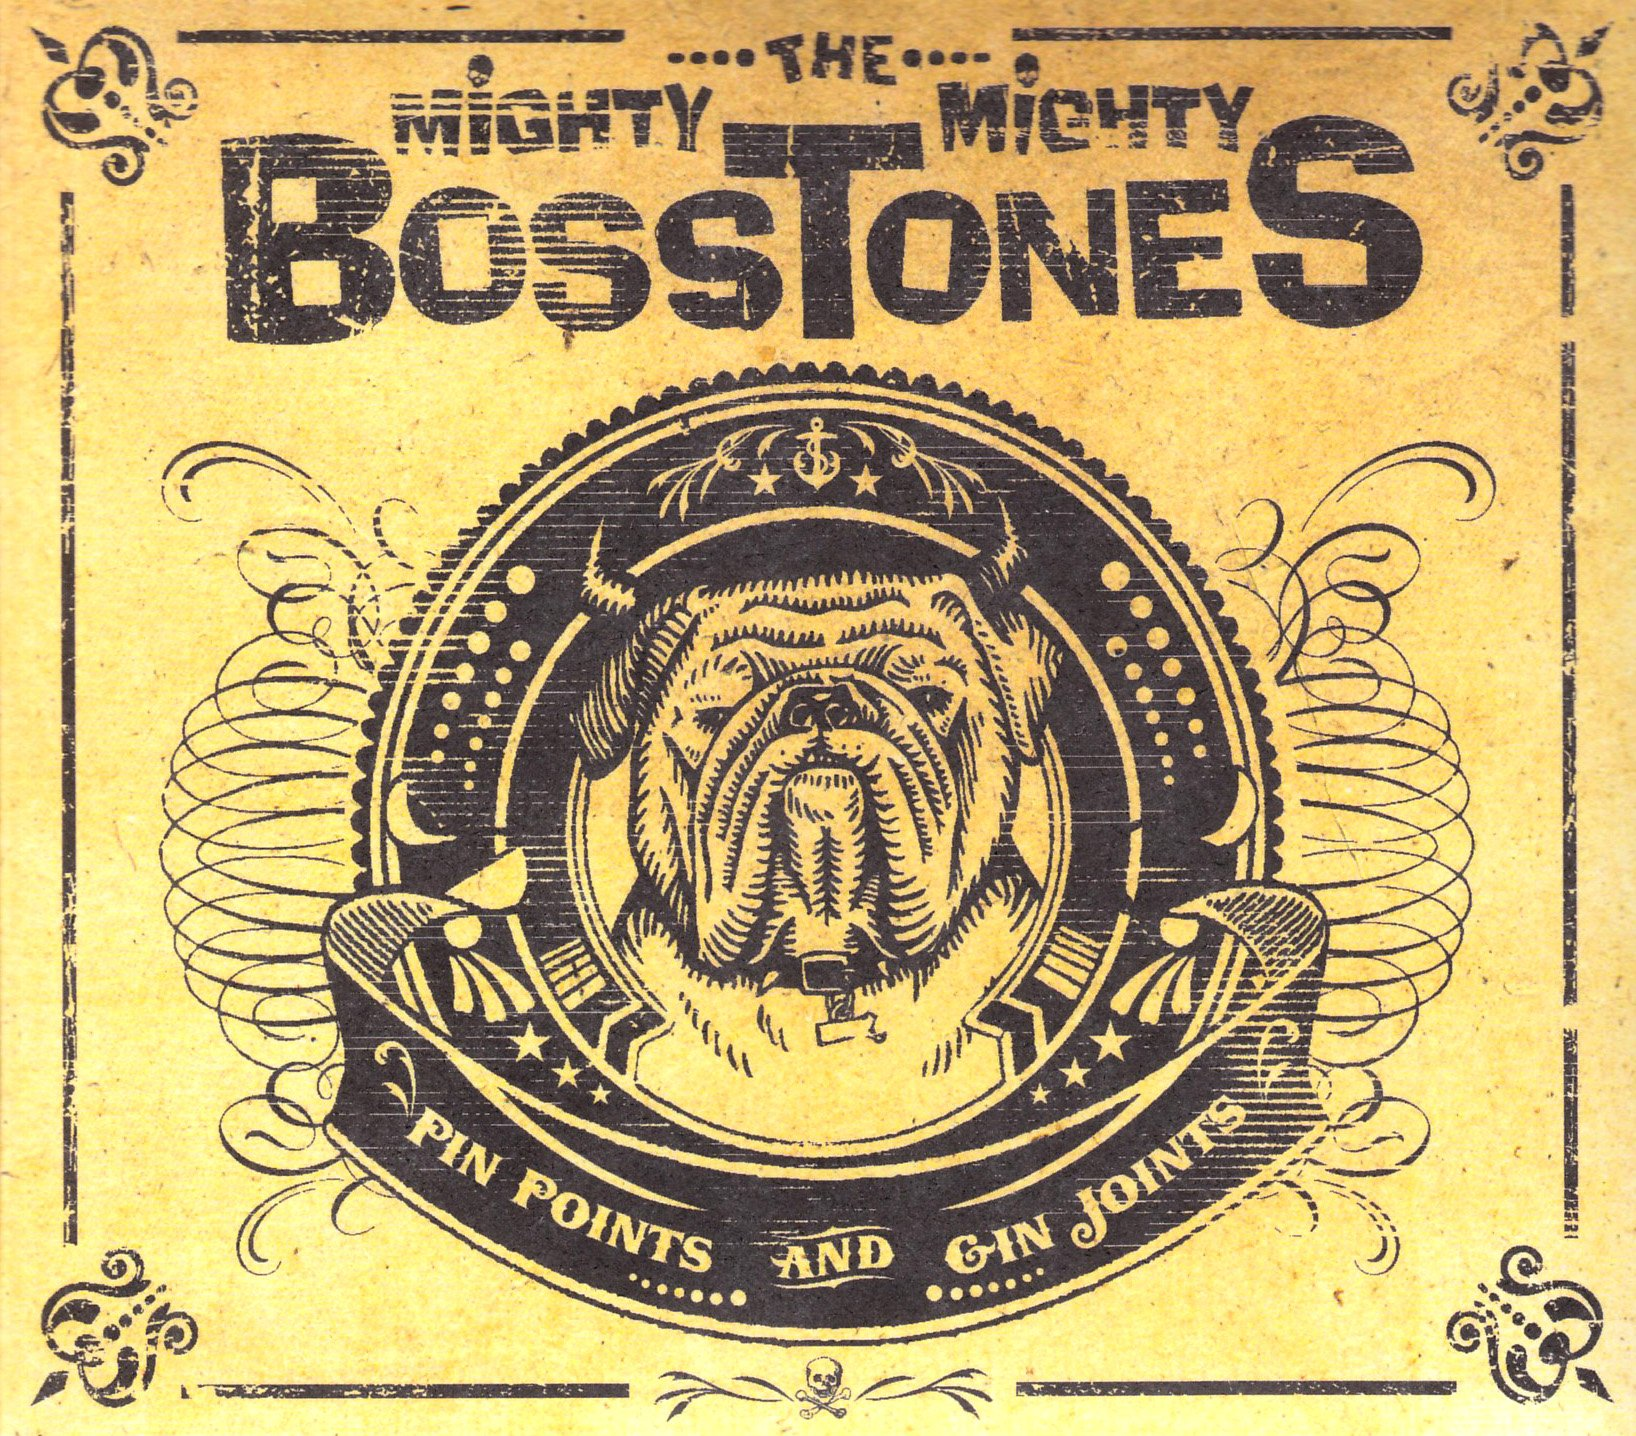 Pin Points & Gin Joints by Big Rig Records